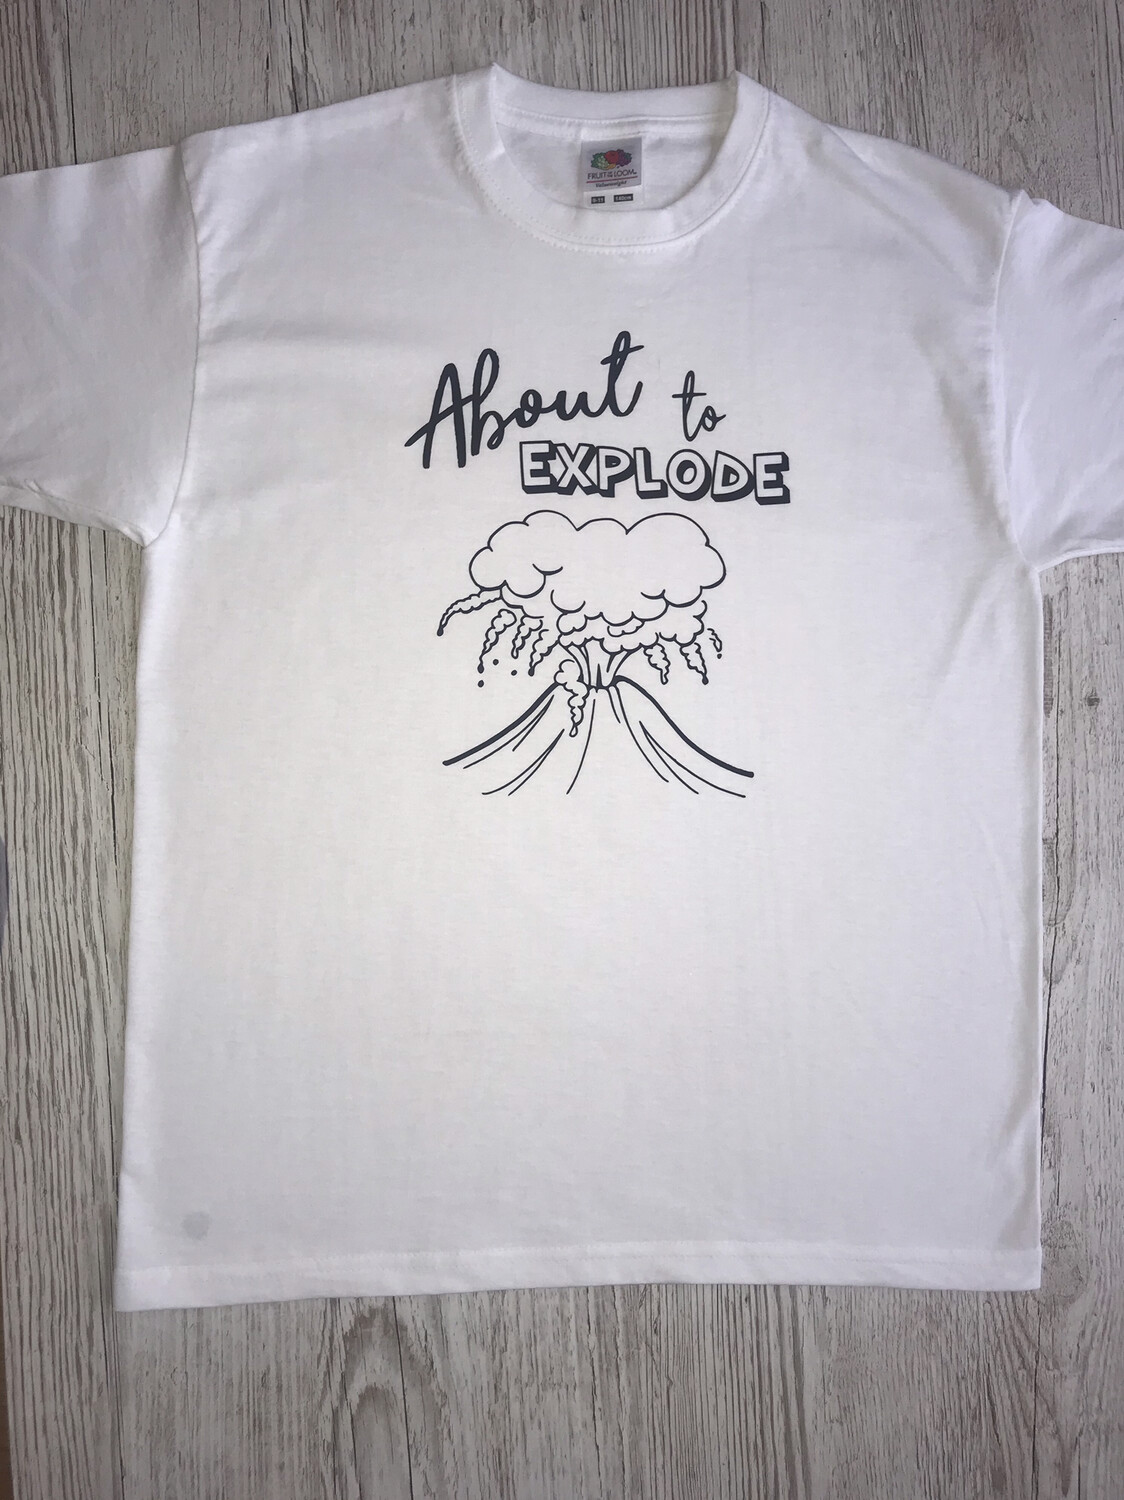 About To Explode Design